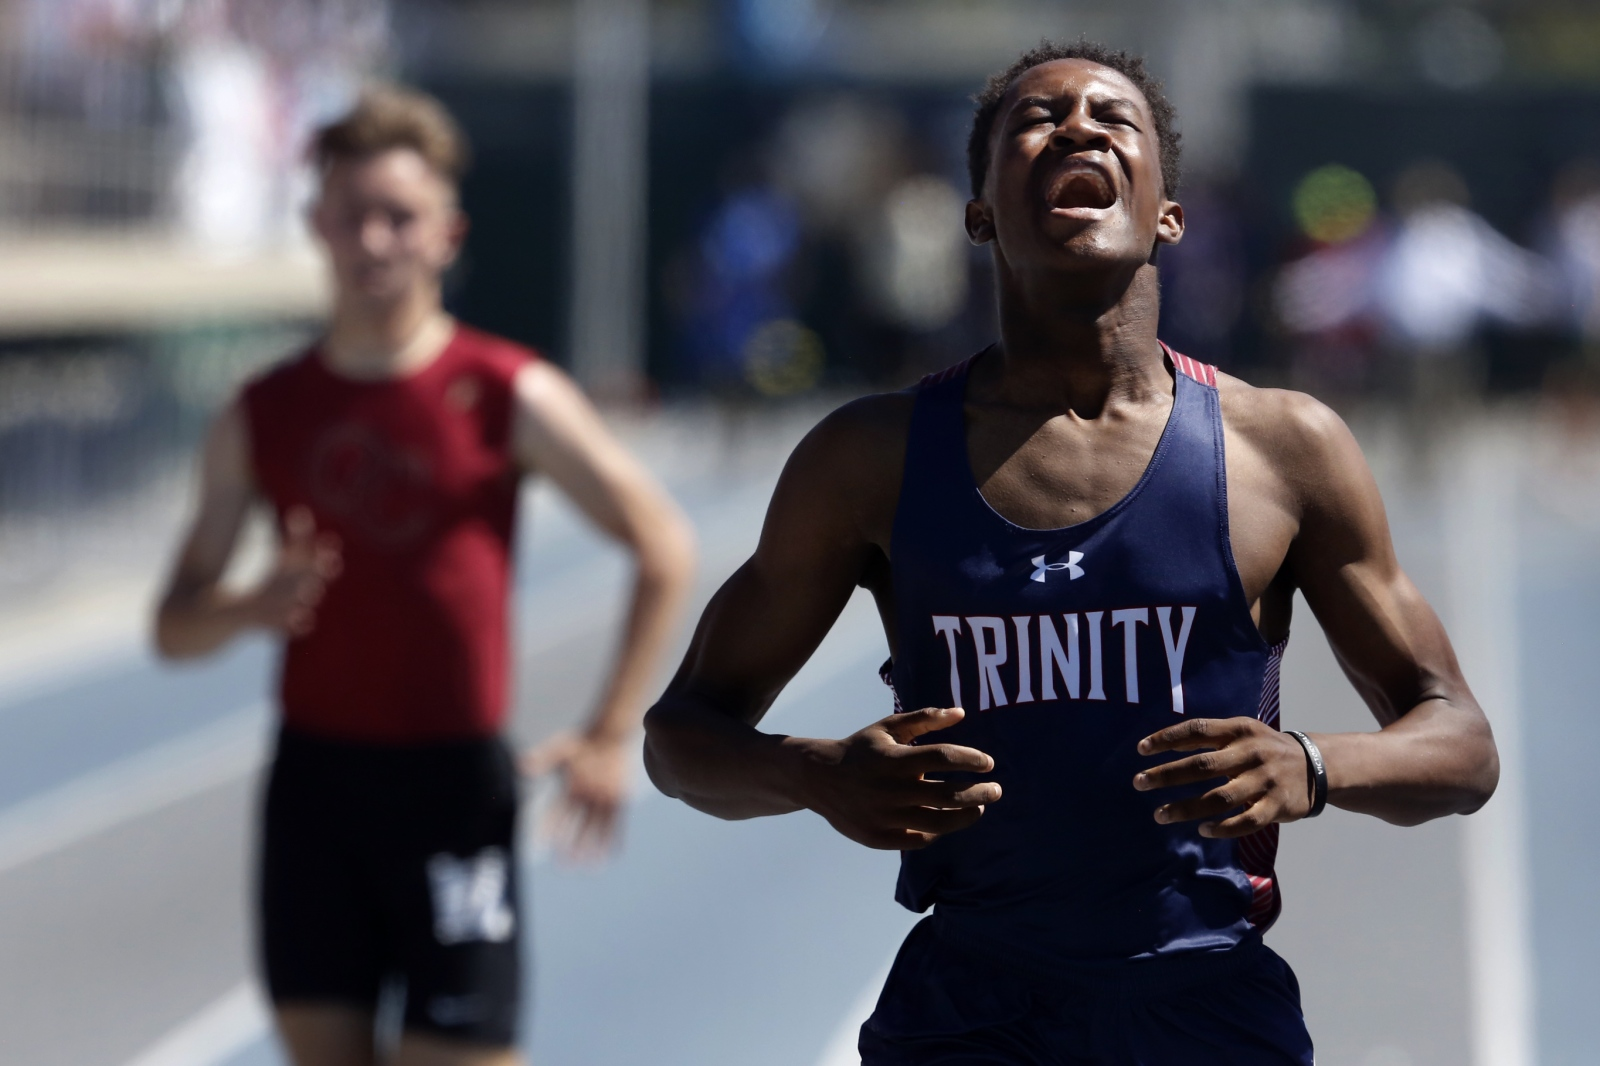 Trinity's Solomon Strader finishes the 400 meter dash at the CIF-Southern Section track and field finals at Cerritos College on Saturday, May 20, 2017. Katharine Lotze/The Signal